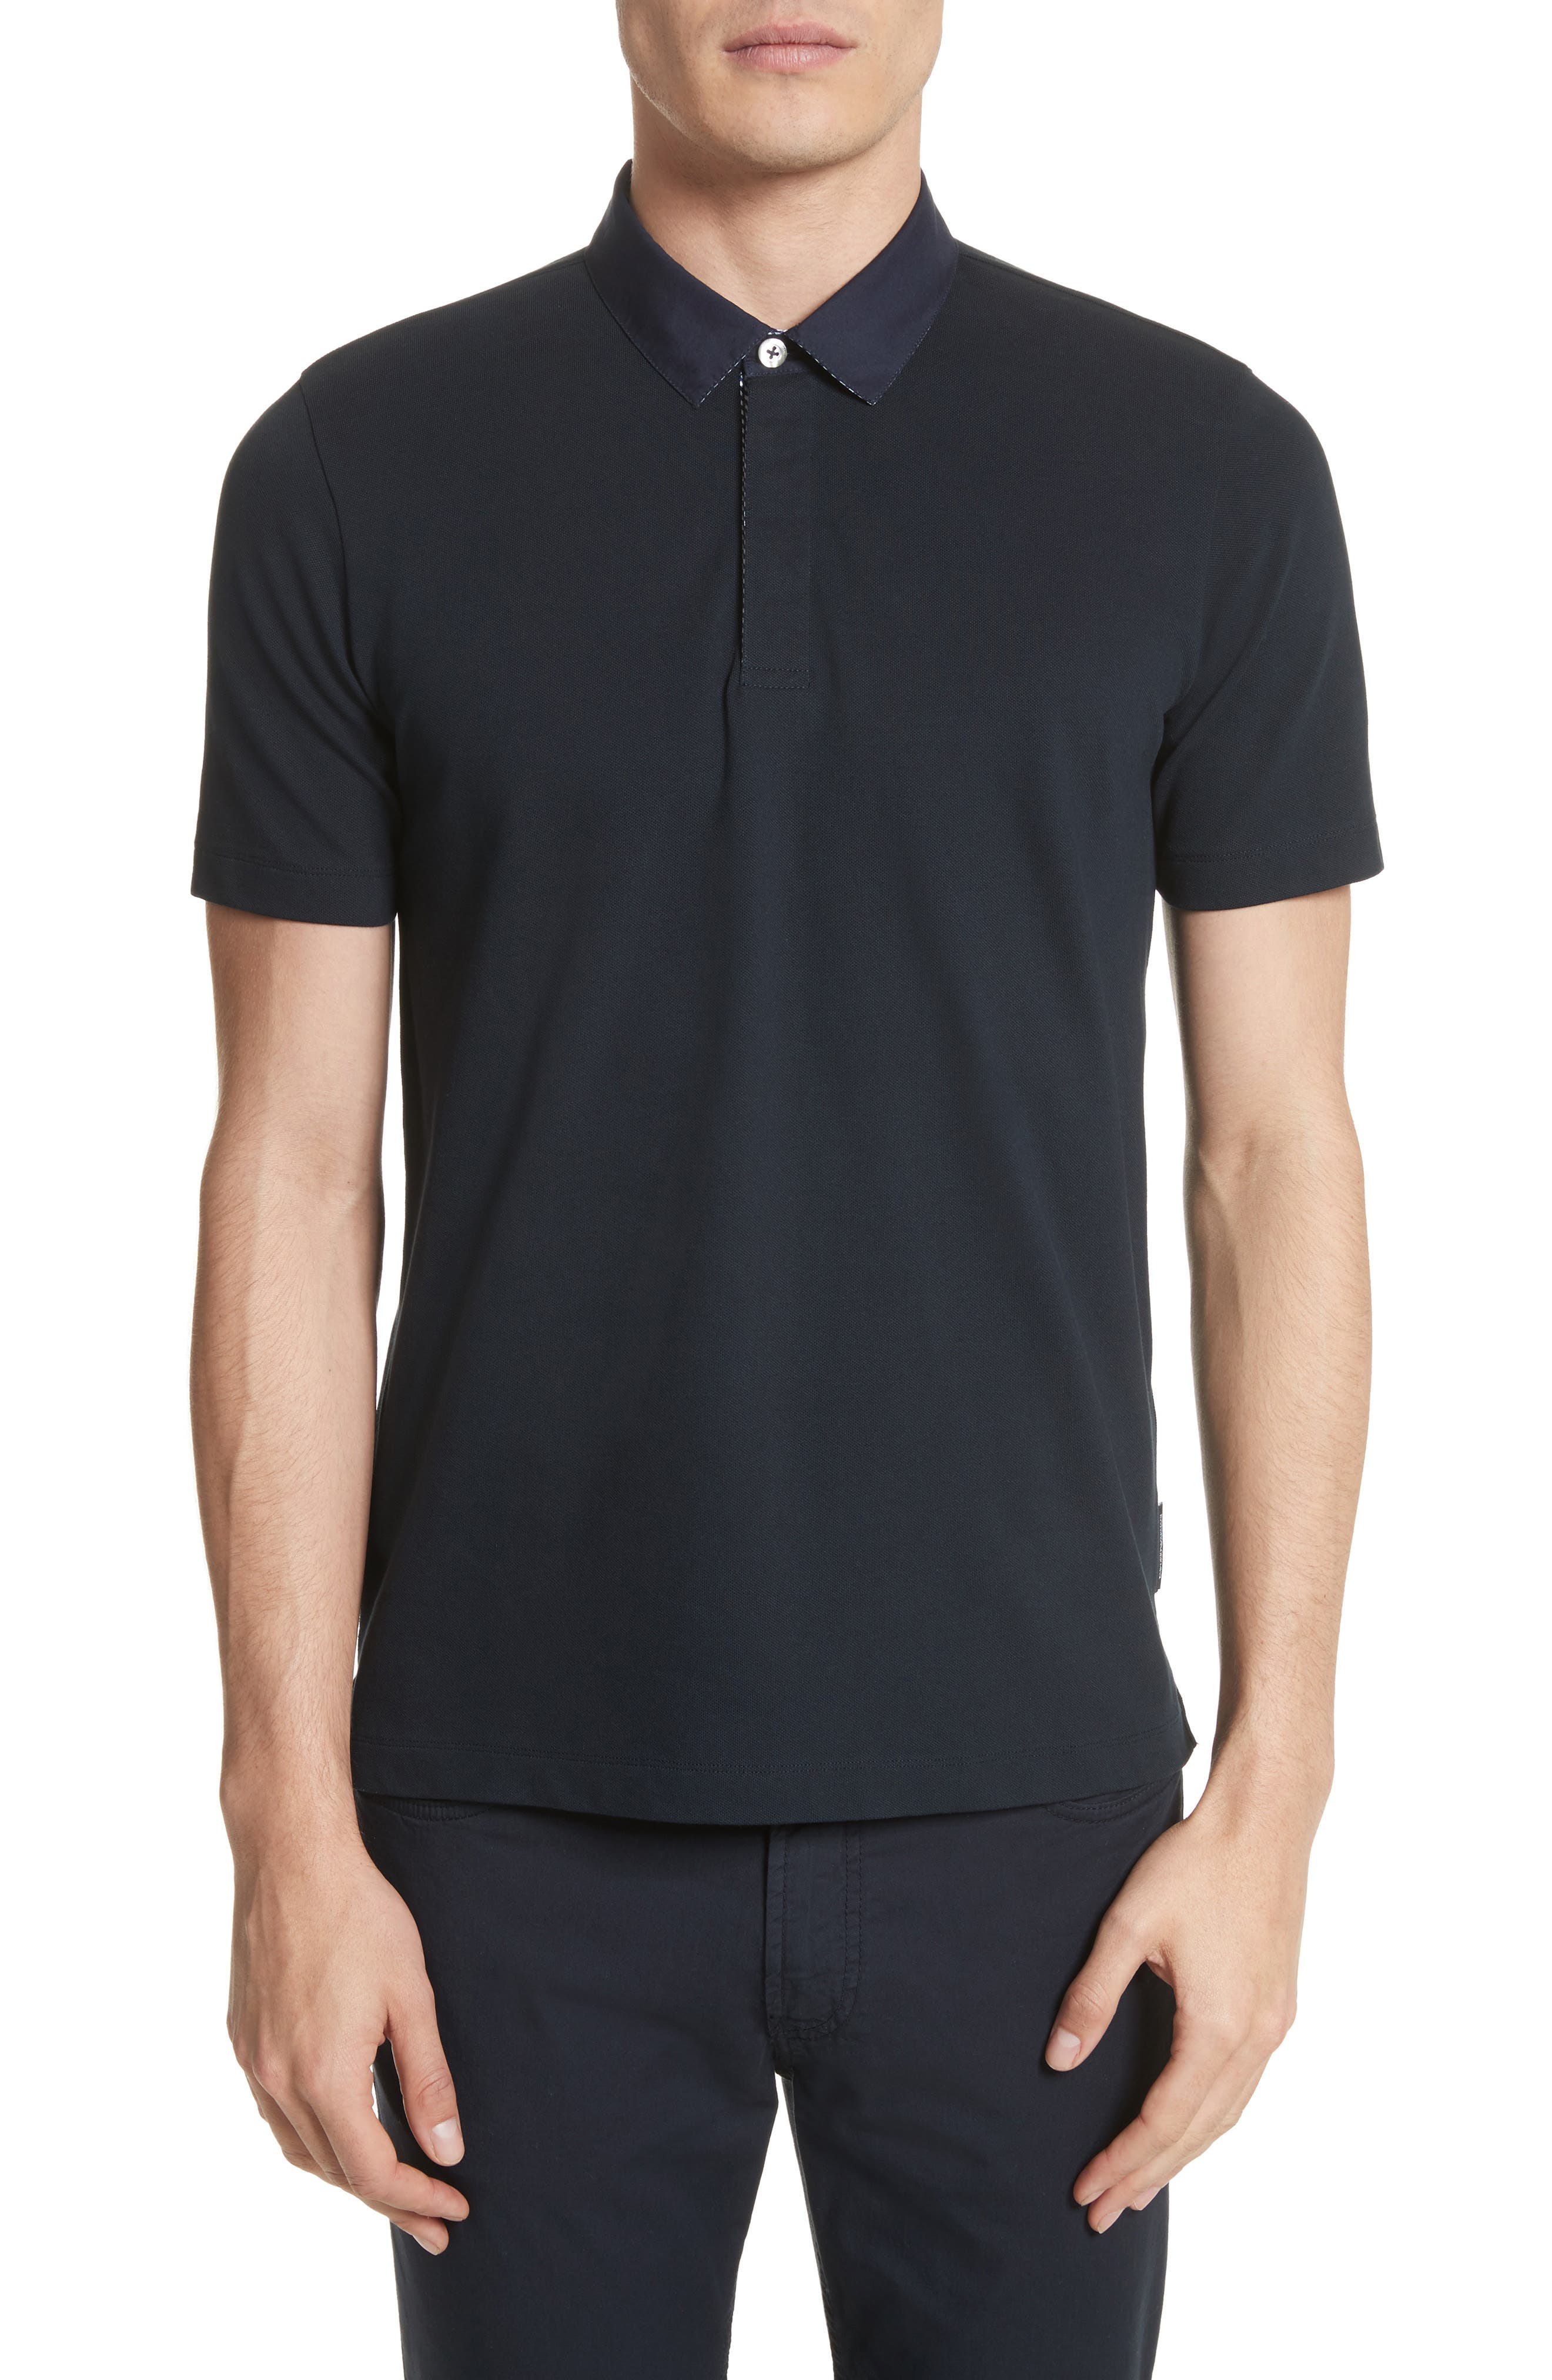 Alternate Image 1 Selected - Emporio Armani Slim Fit Stretch Polo